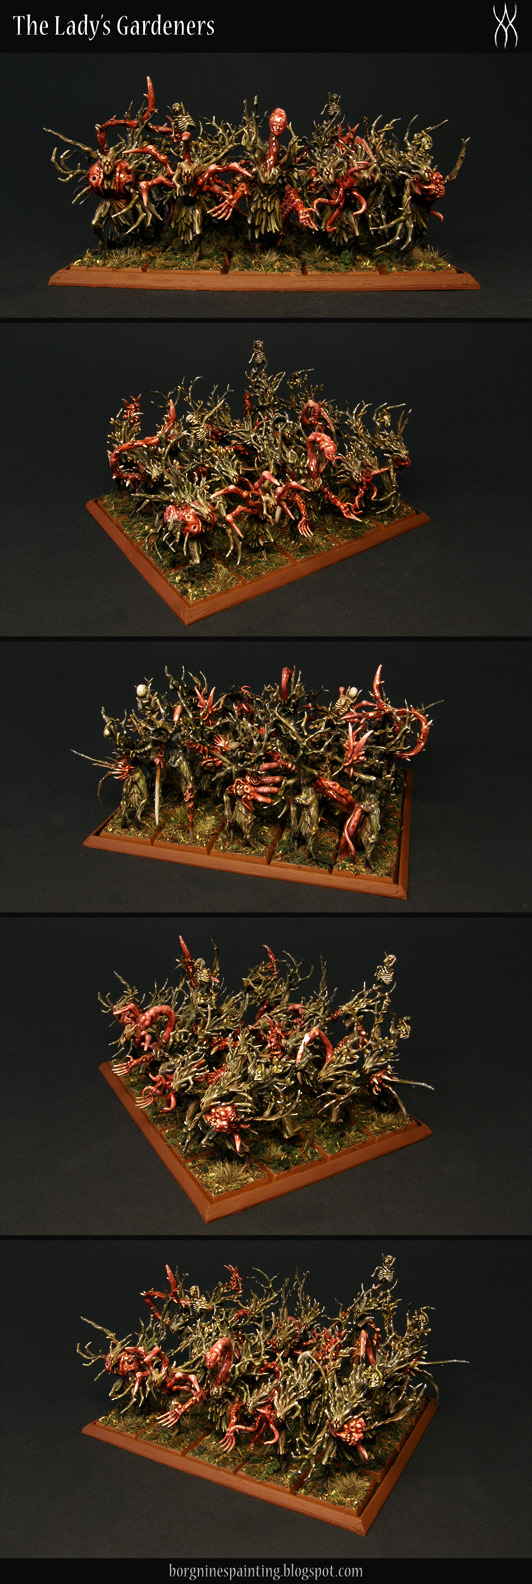 20 converted Sylvaneth Dryads on square bases - with their faces replaced with a sigil and with plenty of greenstuff and bits used to add red, fleshy tendrils, mouths, random limbs and spikes, creating a grimdark, AoS28 version of them. Here they are shown as a whole unit on a tray, from several angles, slightly above. They are usable in WFB or AoS.